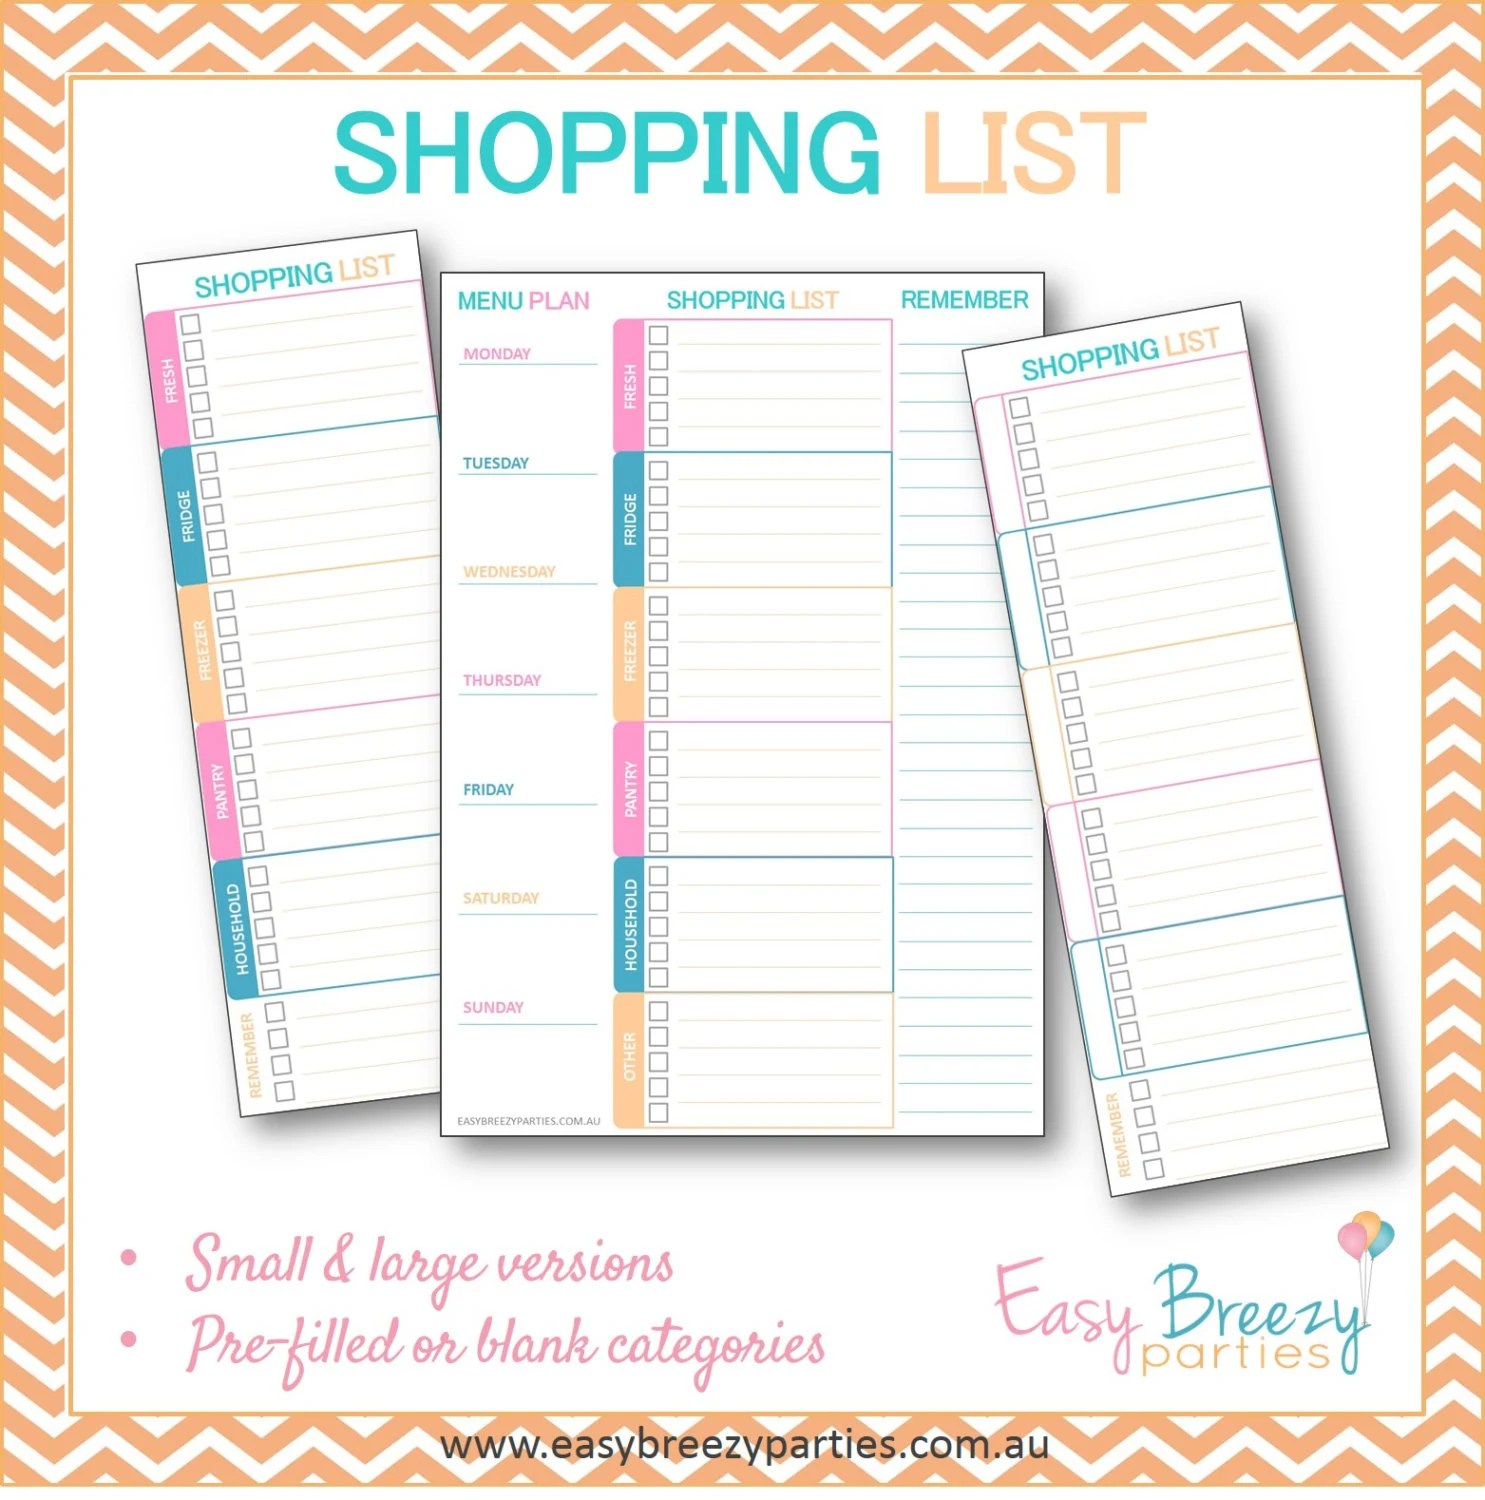 Grocery Supermarket Shopping List Printable - Mutliple versions - printable shopping list with categories